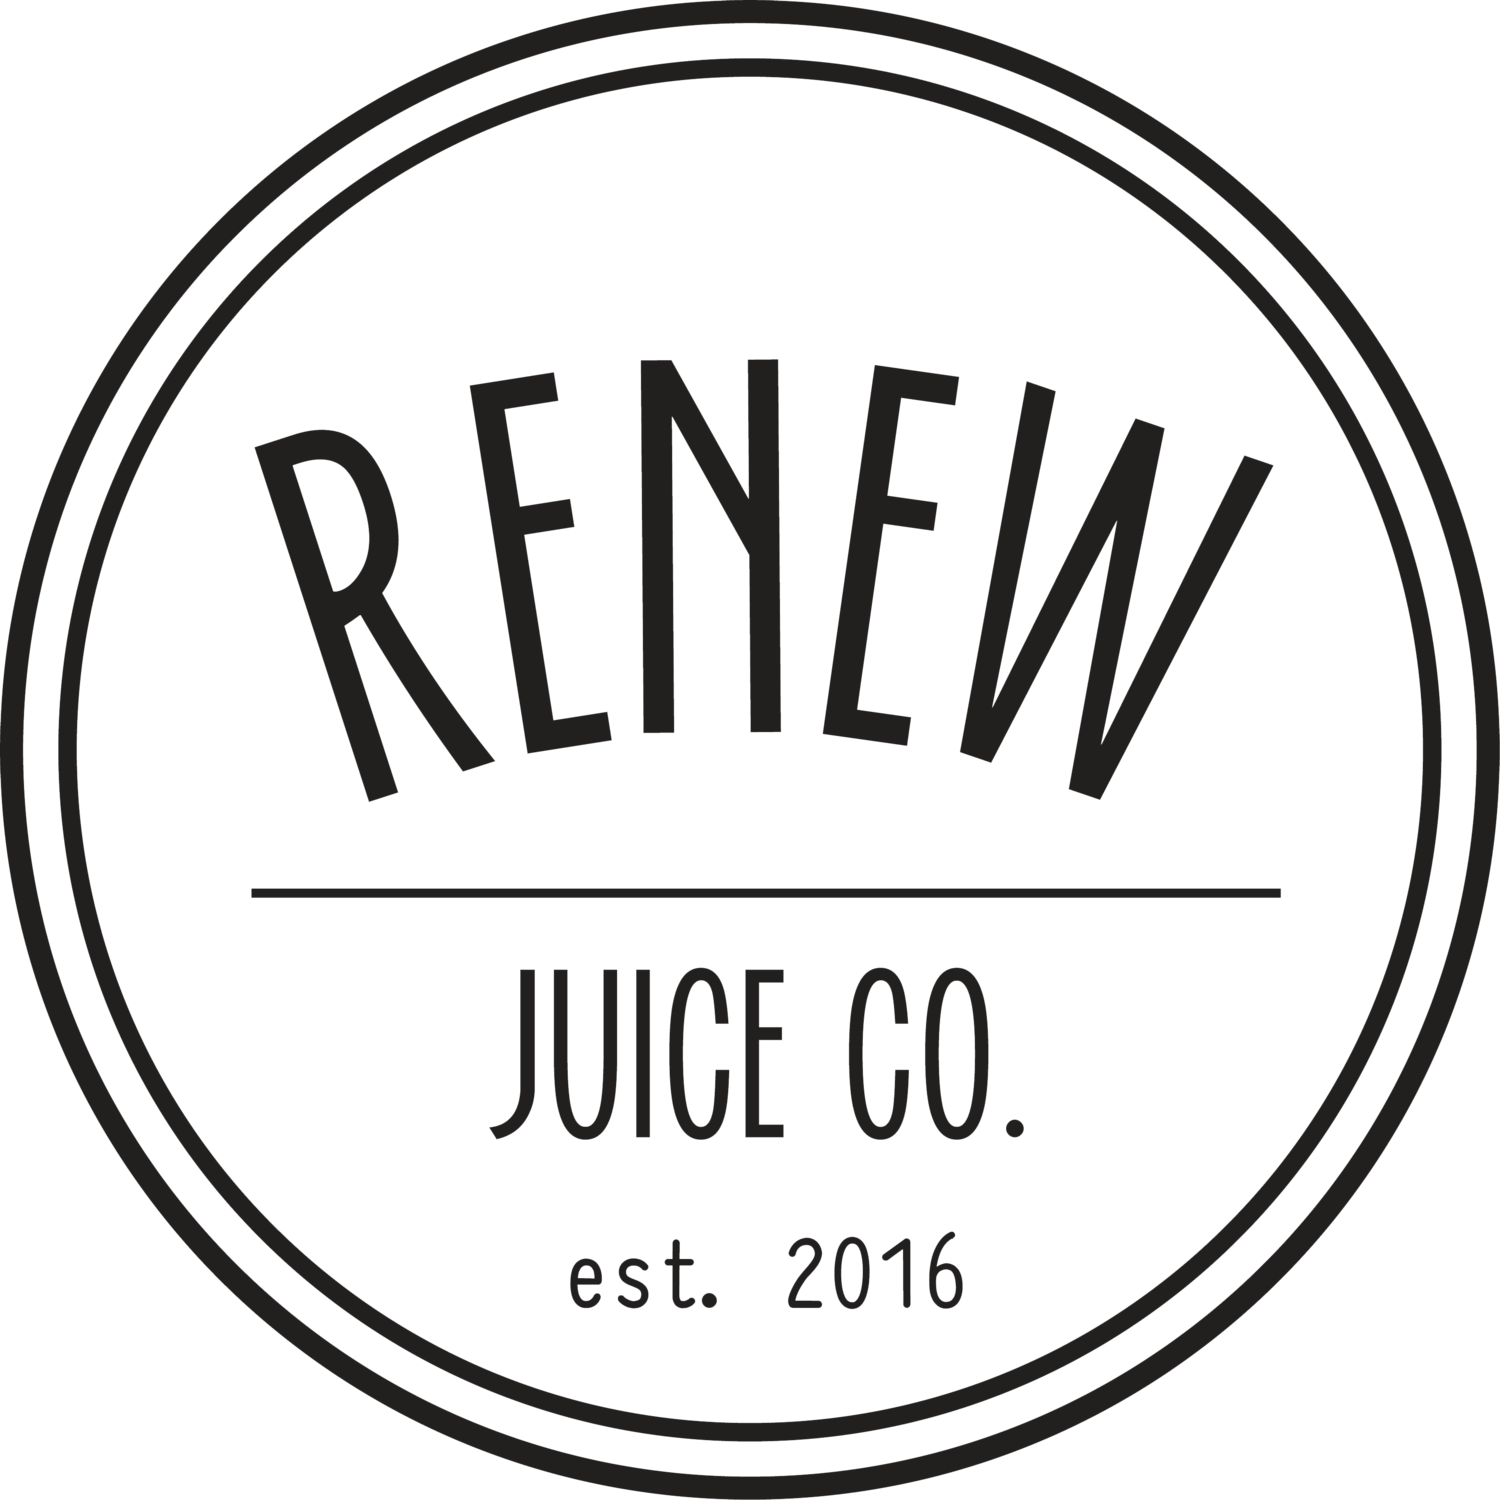 Renew Juice Co.